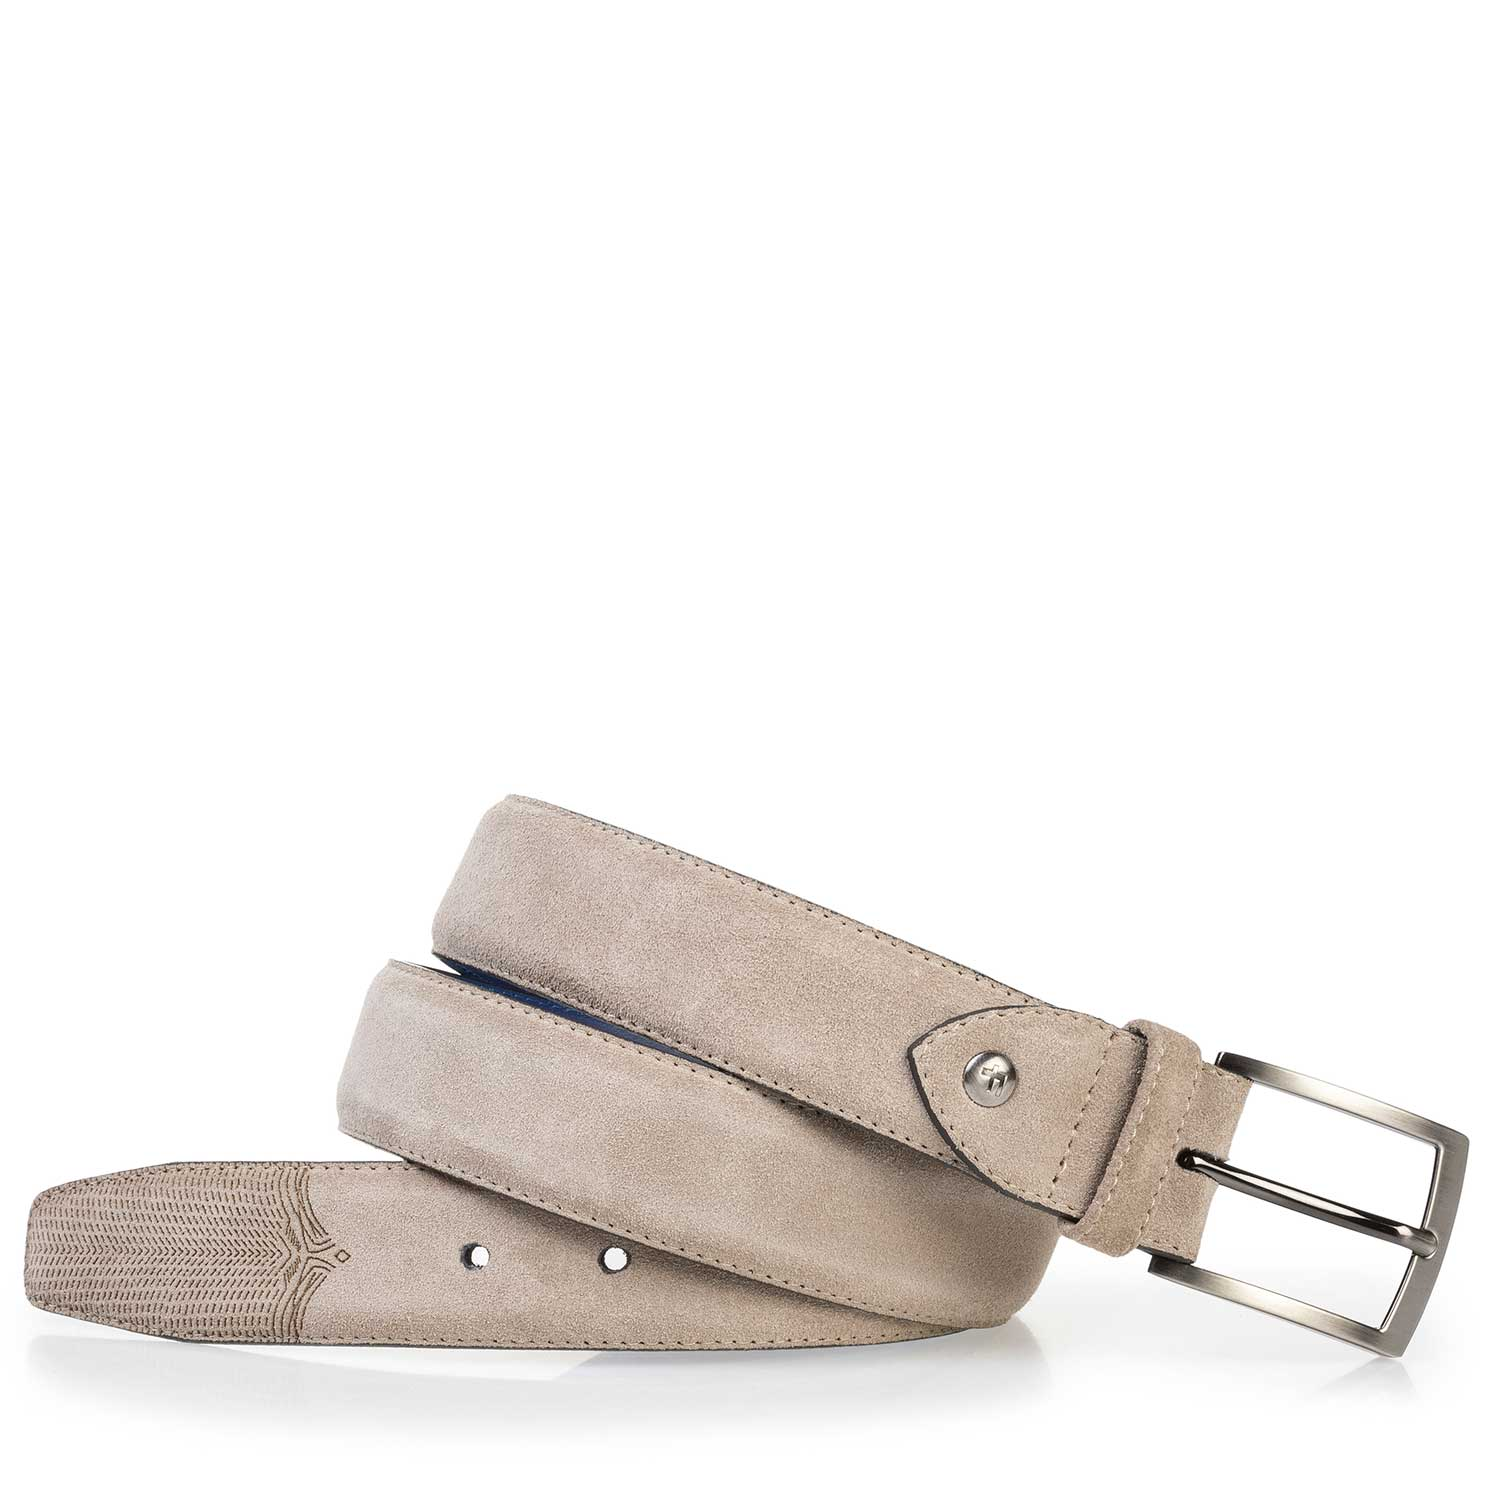 75197/04 - Taupe-coloured calf suede leather belt